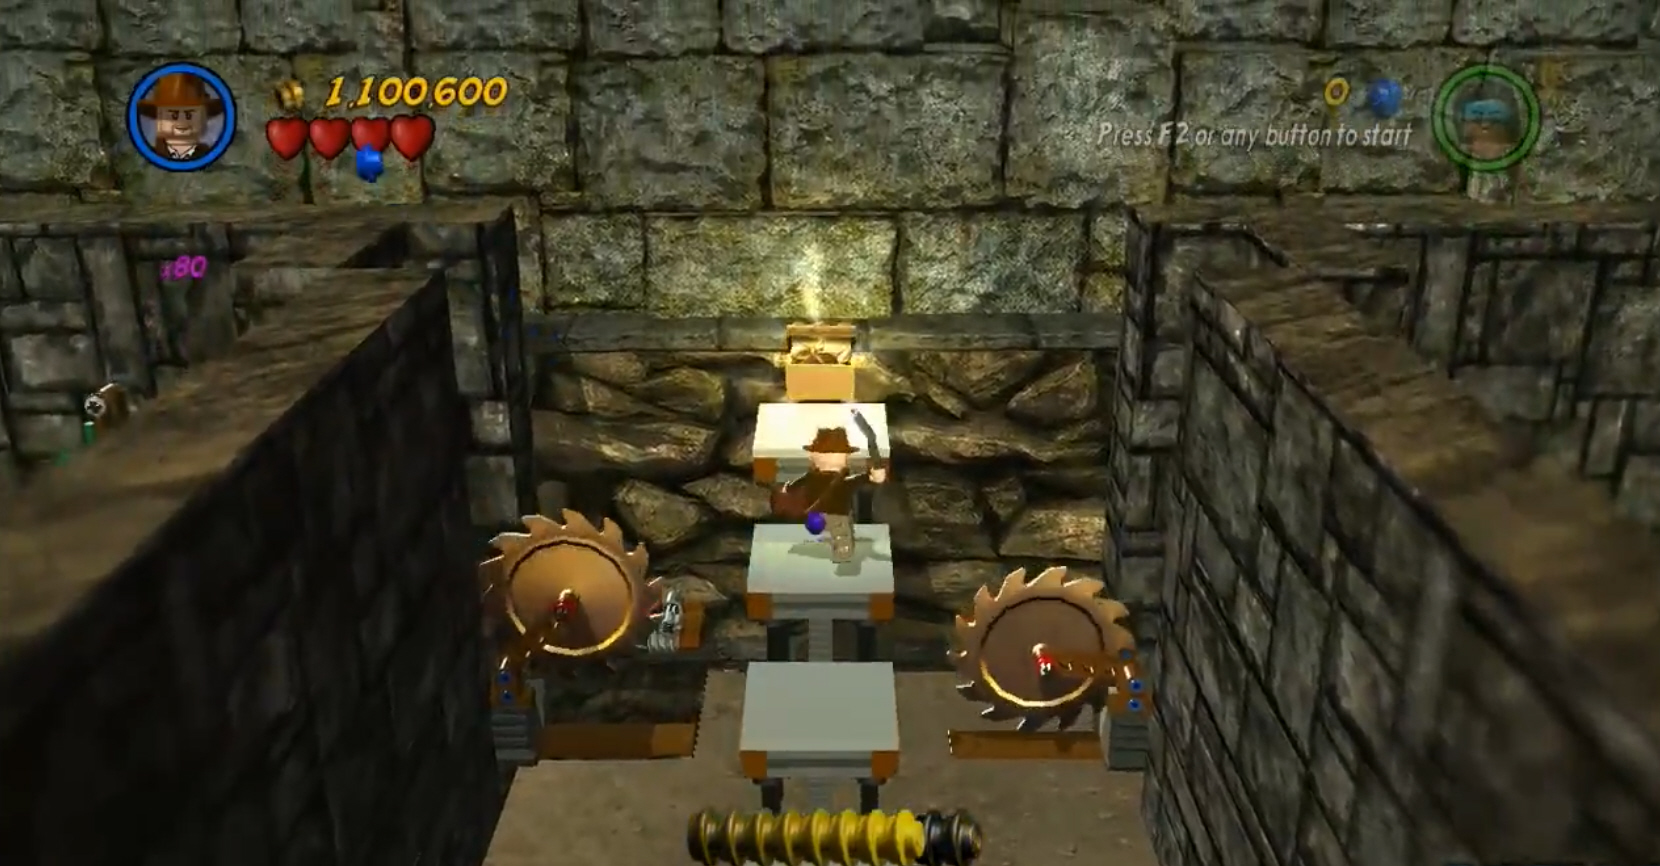 Lego Indiana Jones Games Online For Kids Free